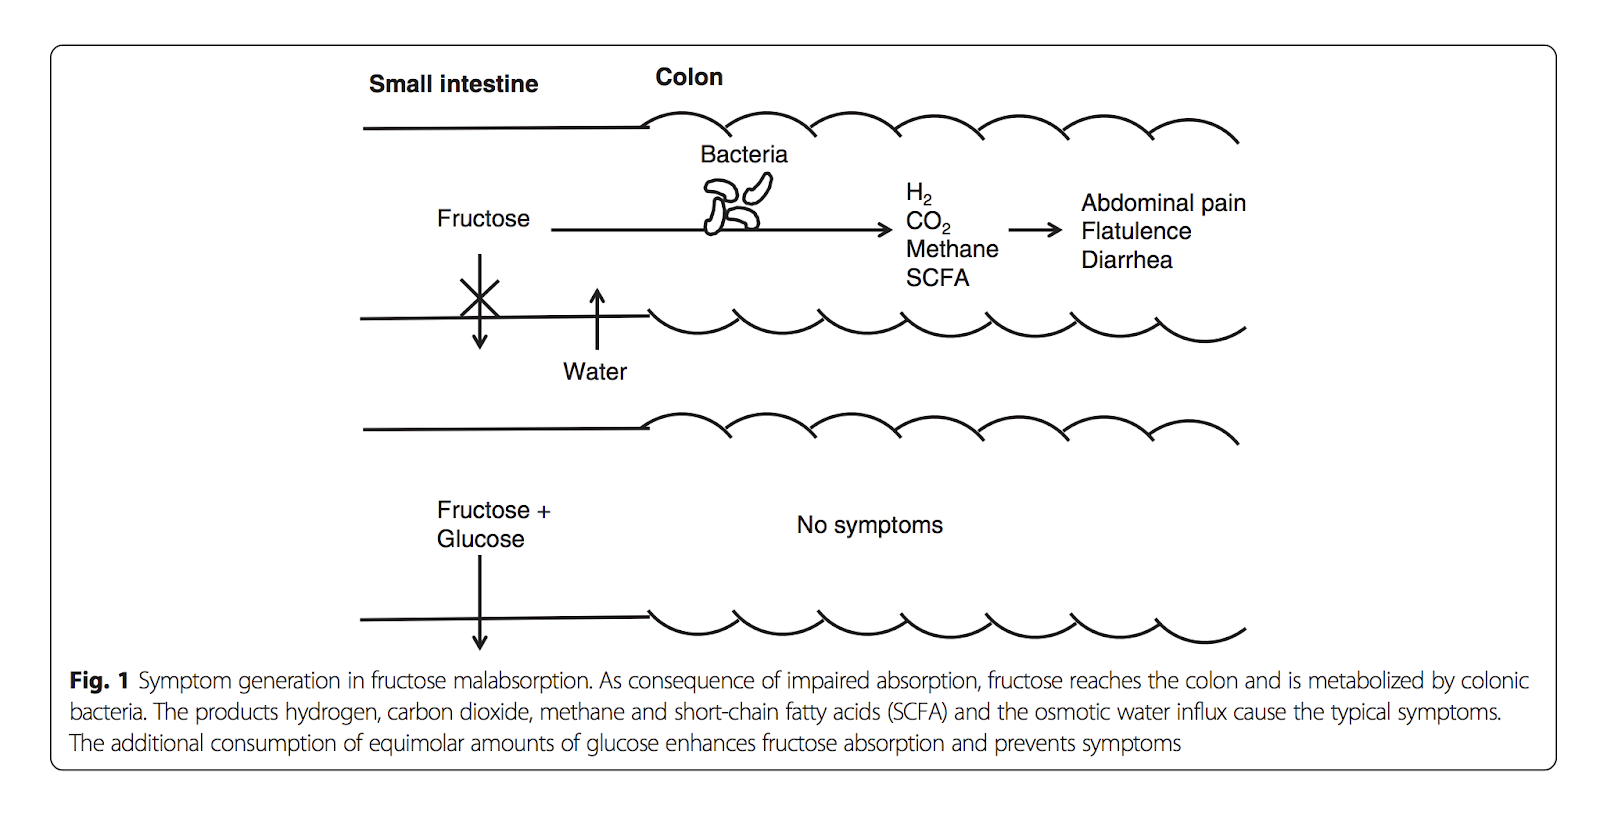 Image taken from: Fructose malabsorption